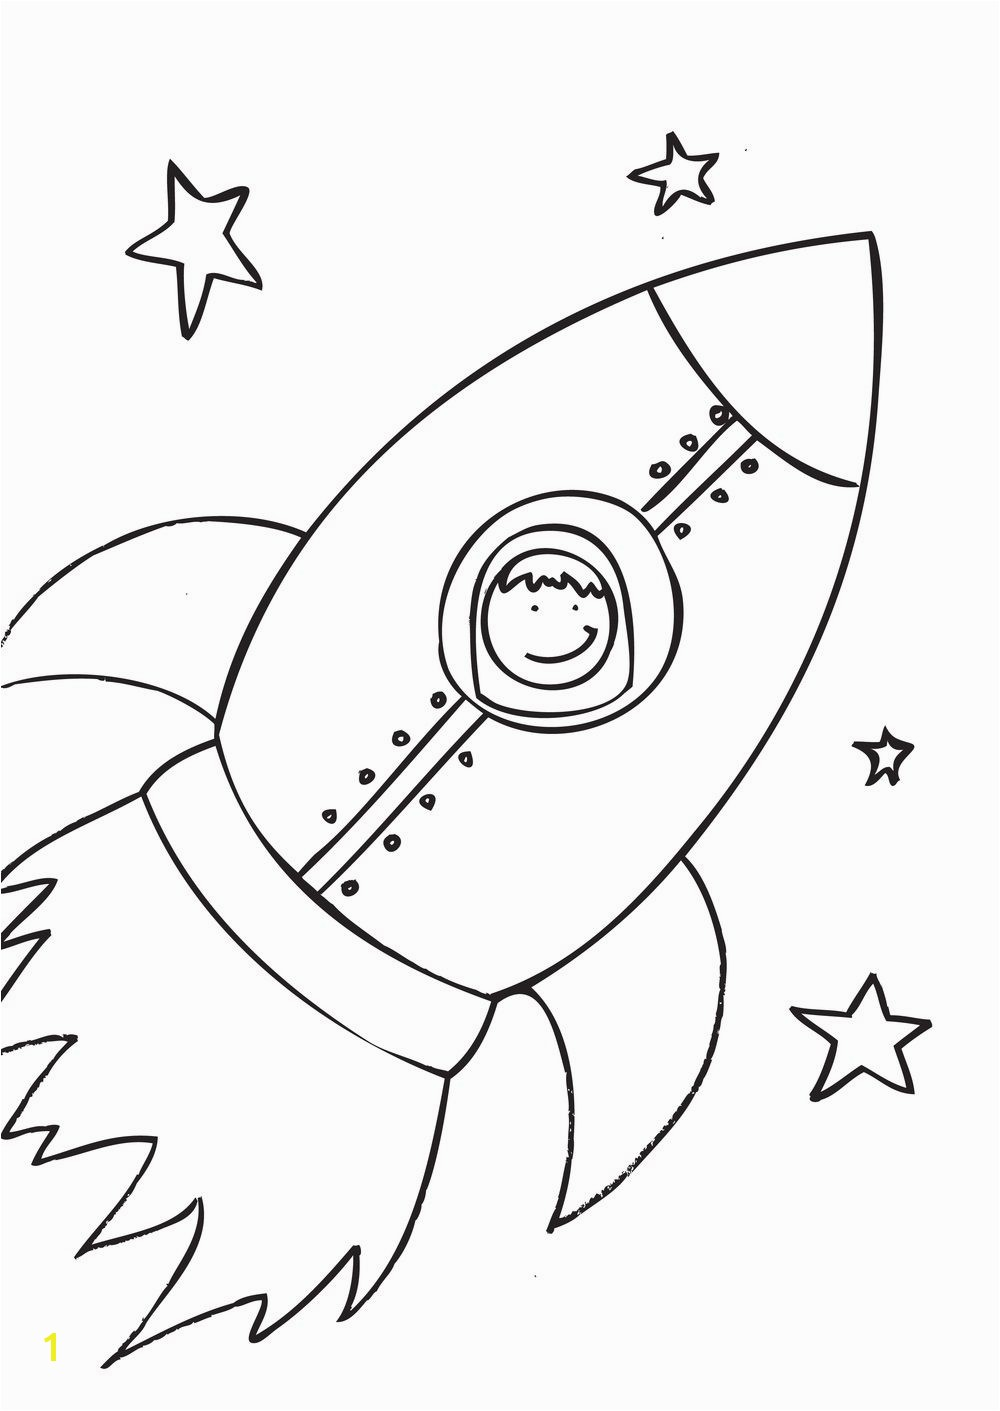 Rocket Ship Coloring Pages Pdf Free Rocket Ship Coloring Pages with Printable Rocket Ship Coloring